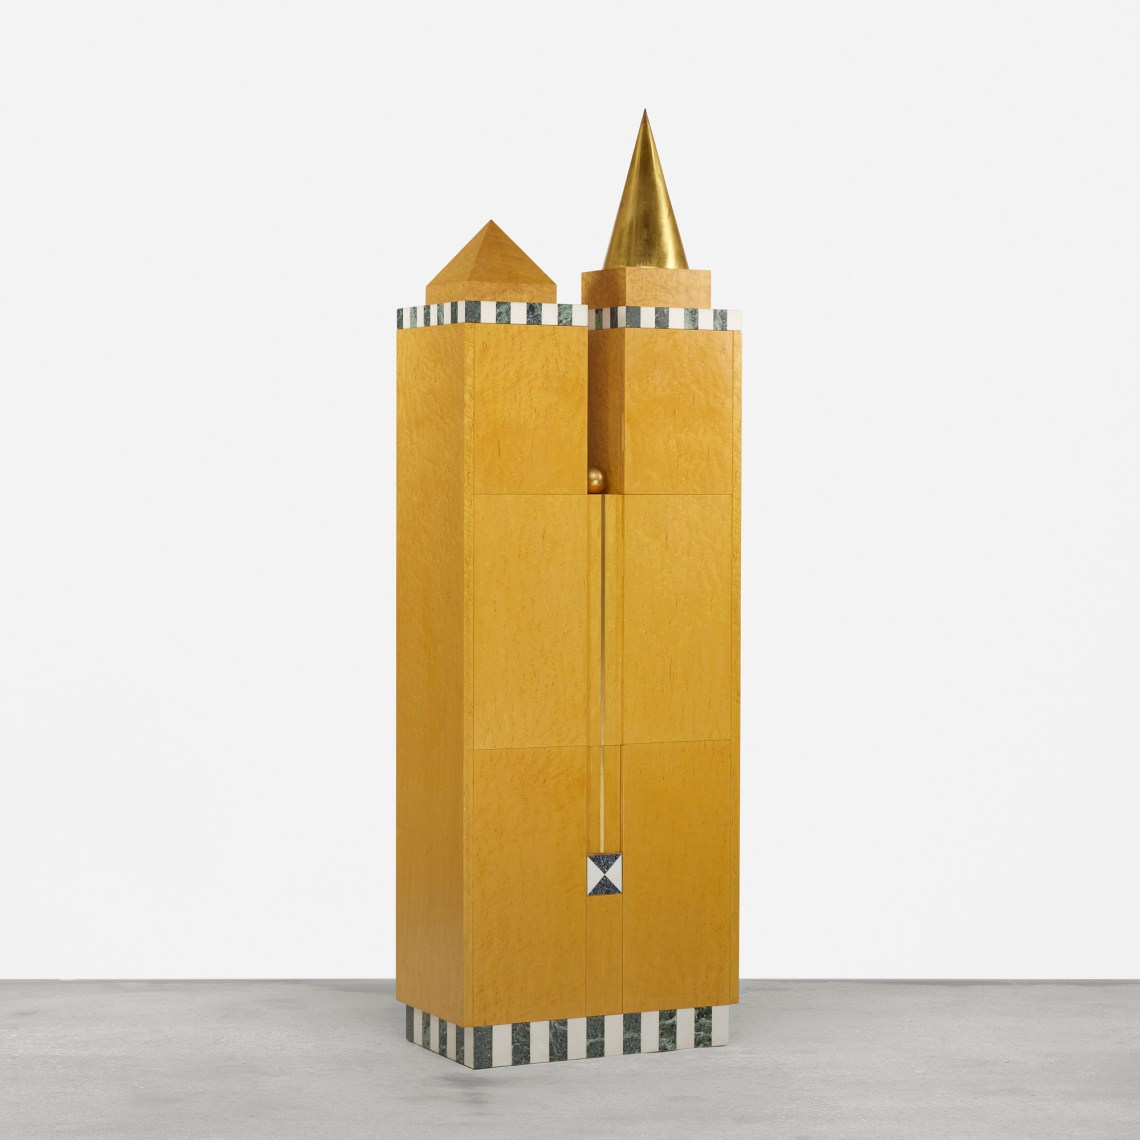 224_1_art_design_february_2016_draenert_berghof_landes_rang_f1_cabinet__wright_auction.jpg